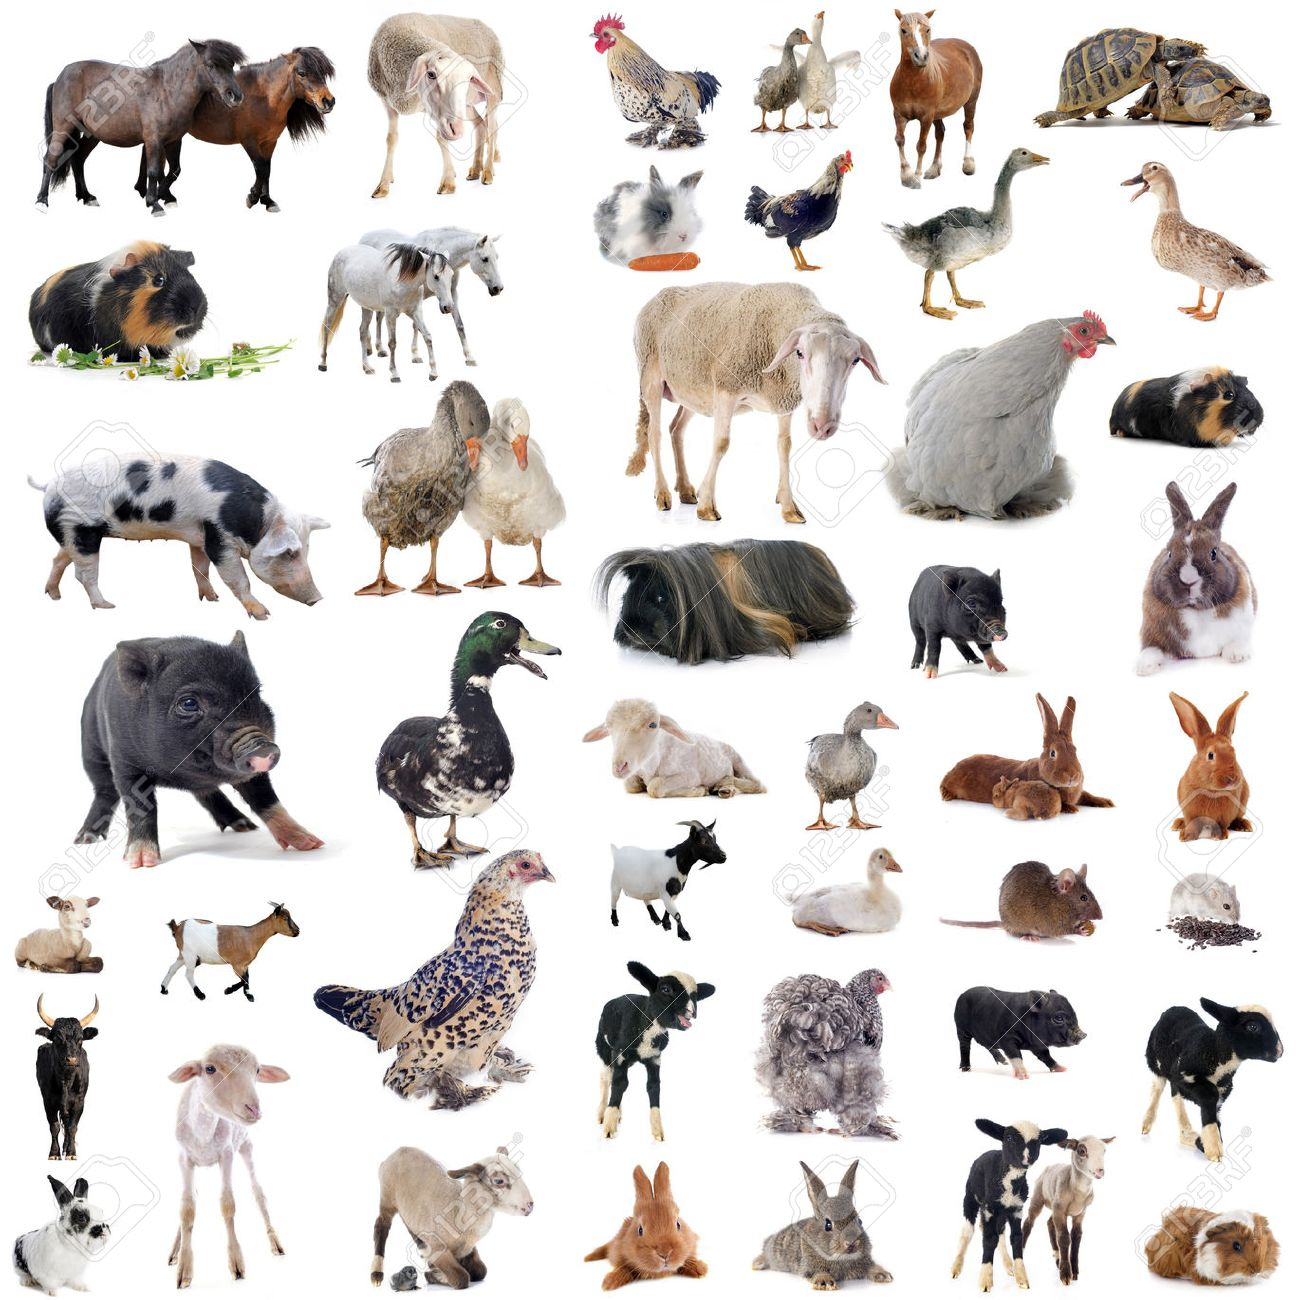 farm animals in front of white background Stock Photo - 47670591